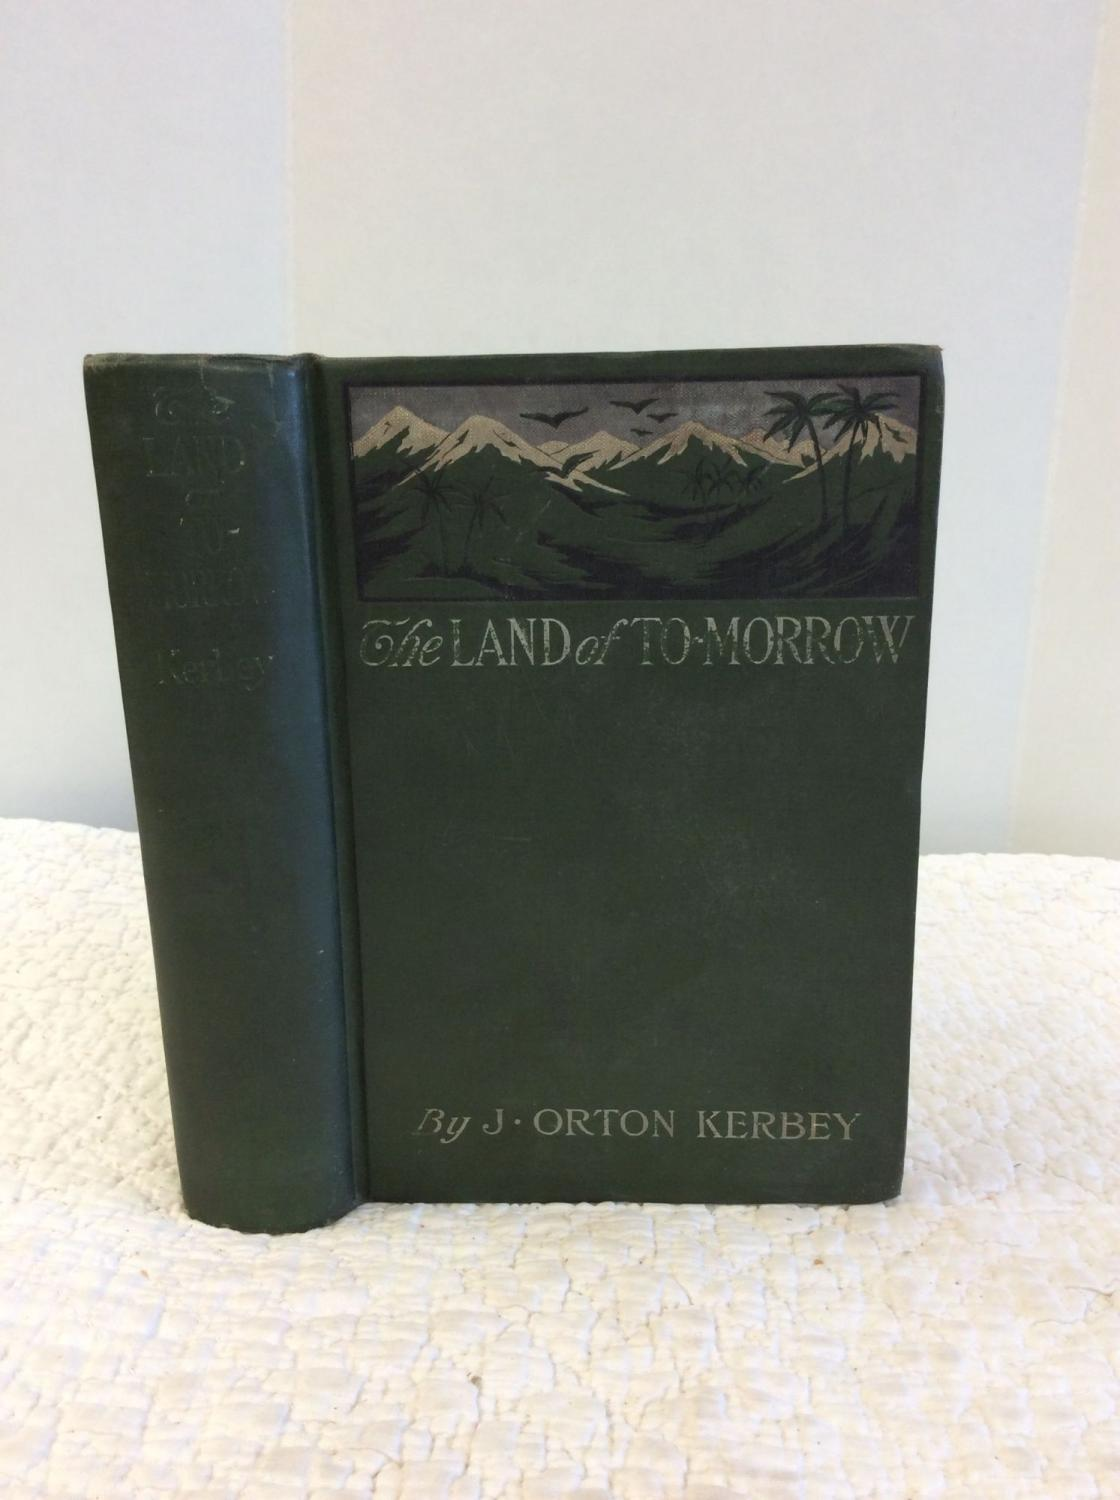 THE LAND OF TO-MORROW: A Newspaper Exploration Up the Amazon and Over the Andes to the California of South America J. Orton Kerbey Hardcover